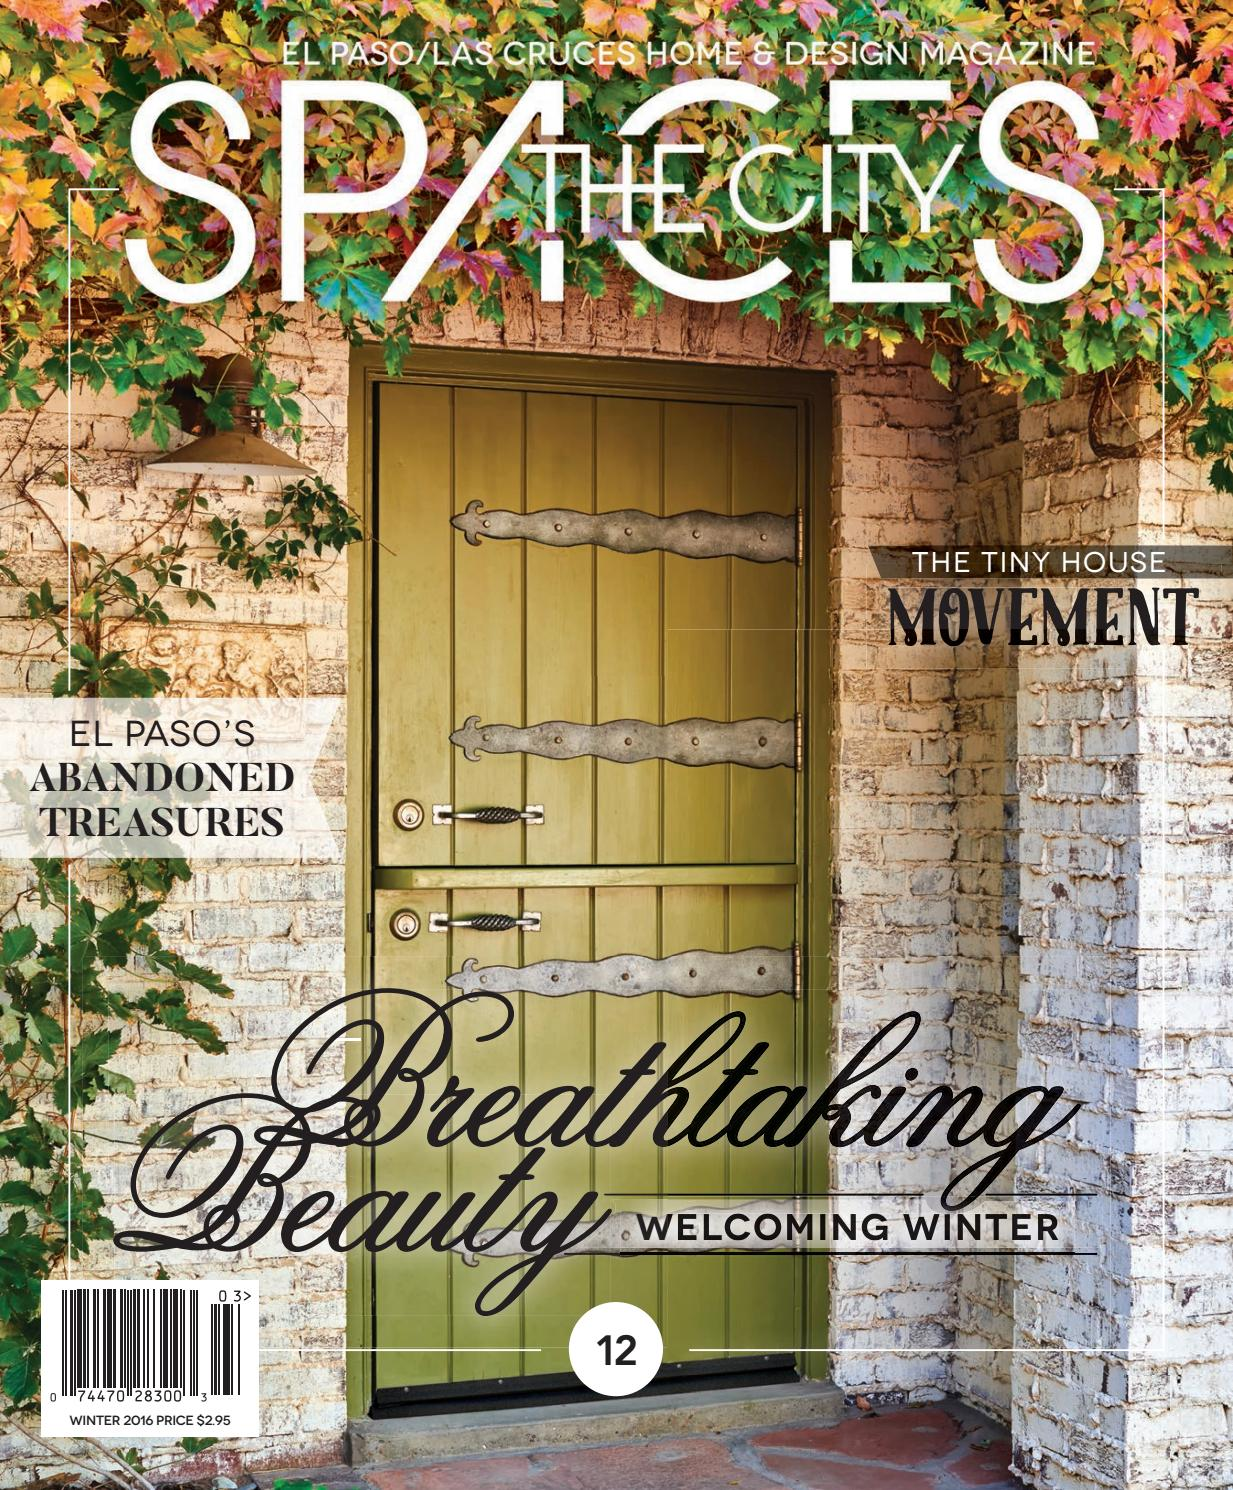 Spaces winter 2016 by the city magazine el paso las cruces for The house company el paso